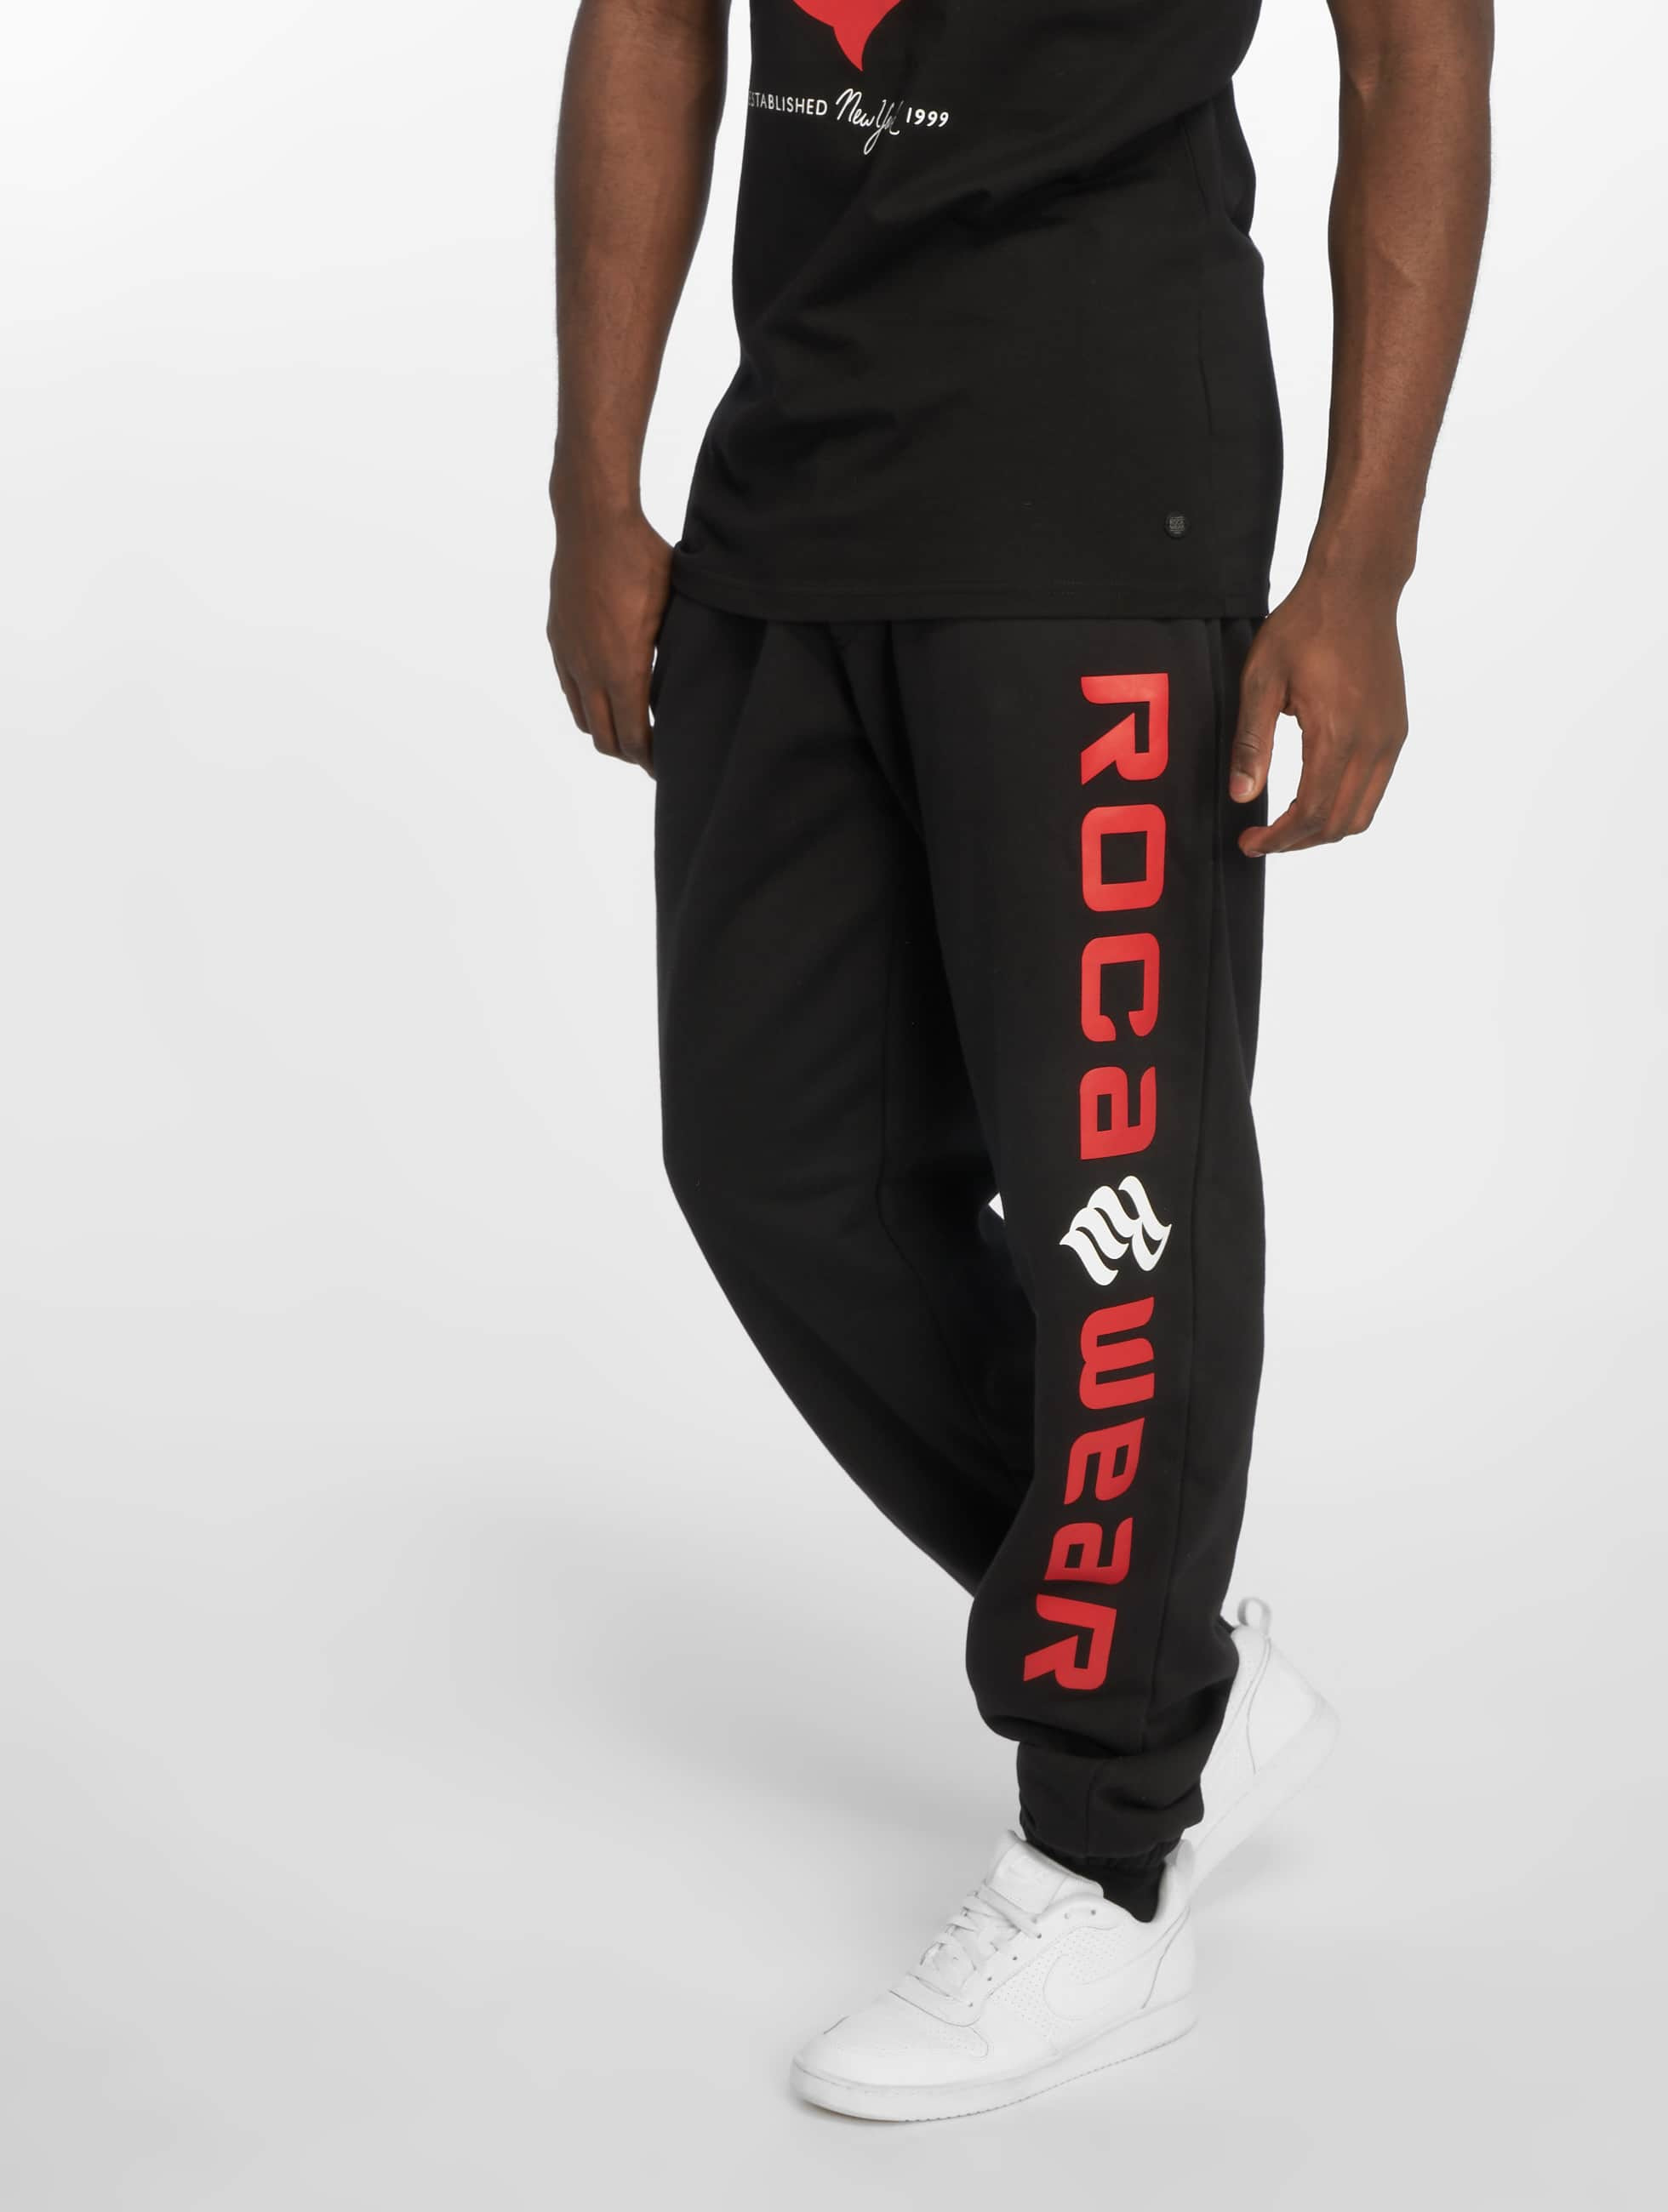 Rocawear / Sweat Pant Basic Fleece in black 2XL